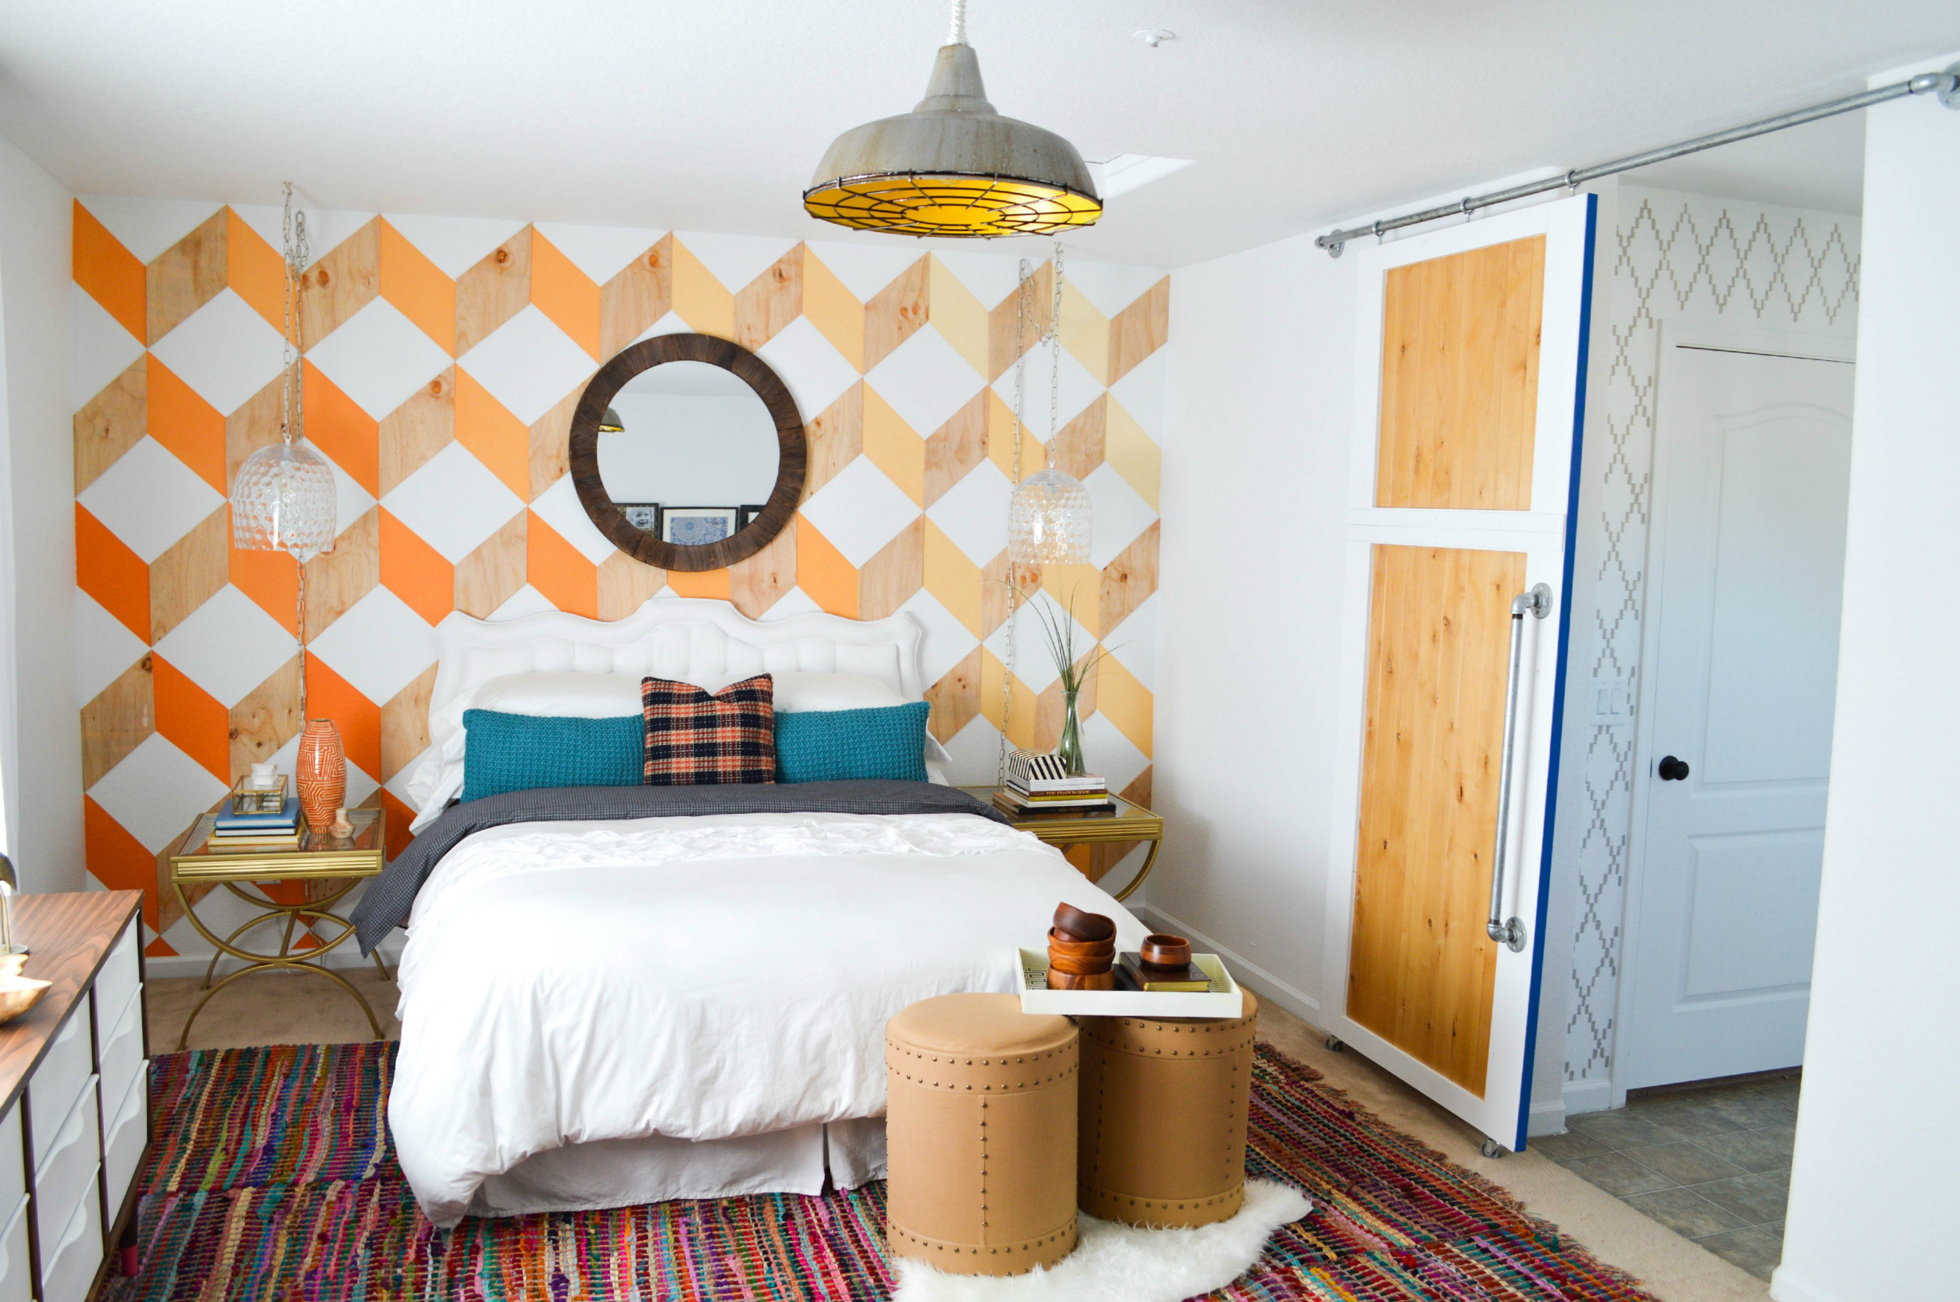 Remodeled bathroom with orange patterned walls